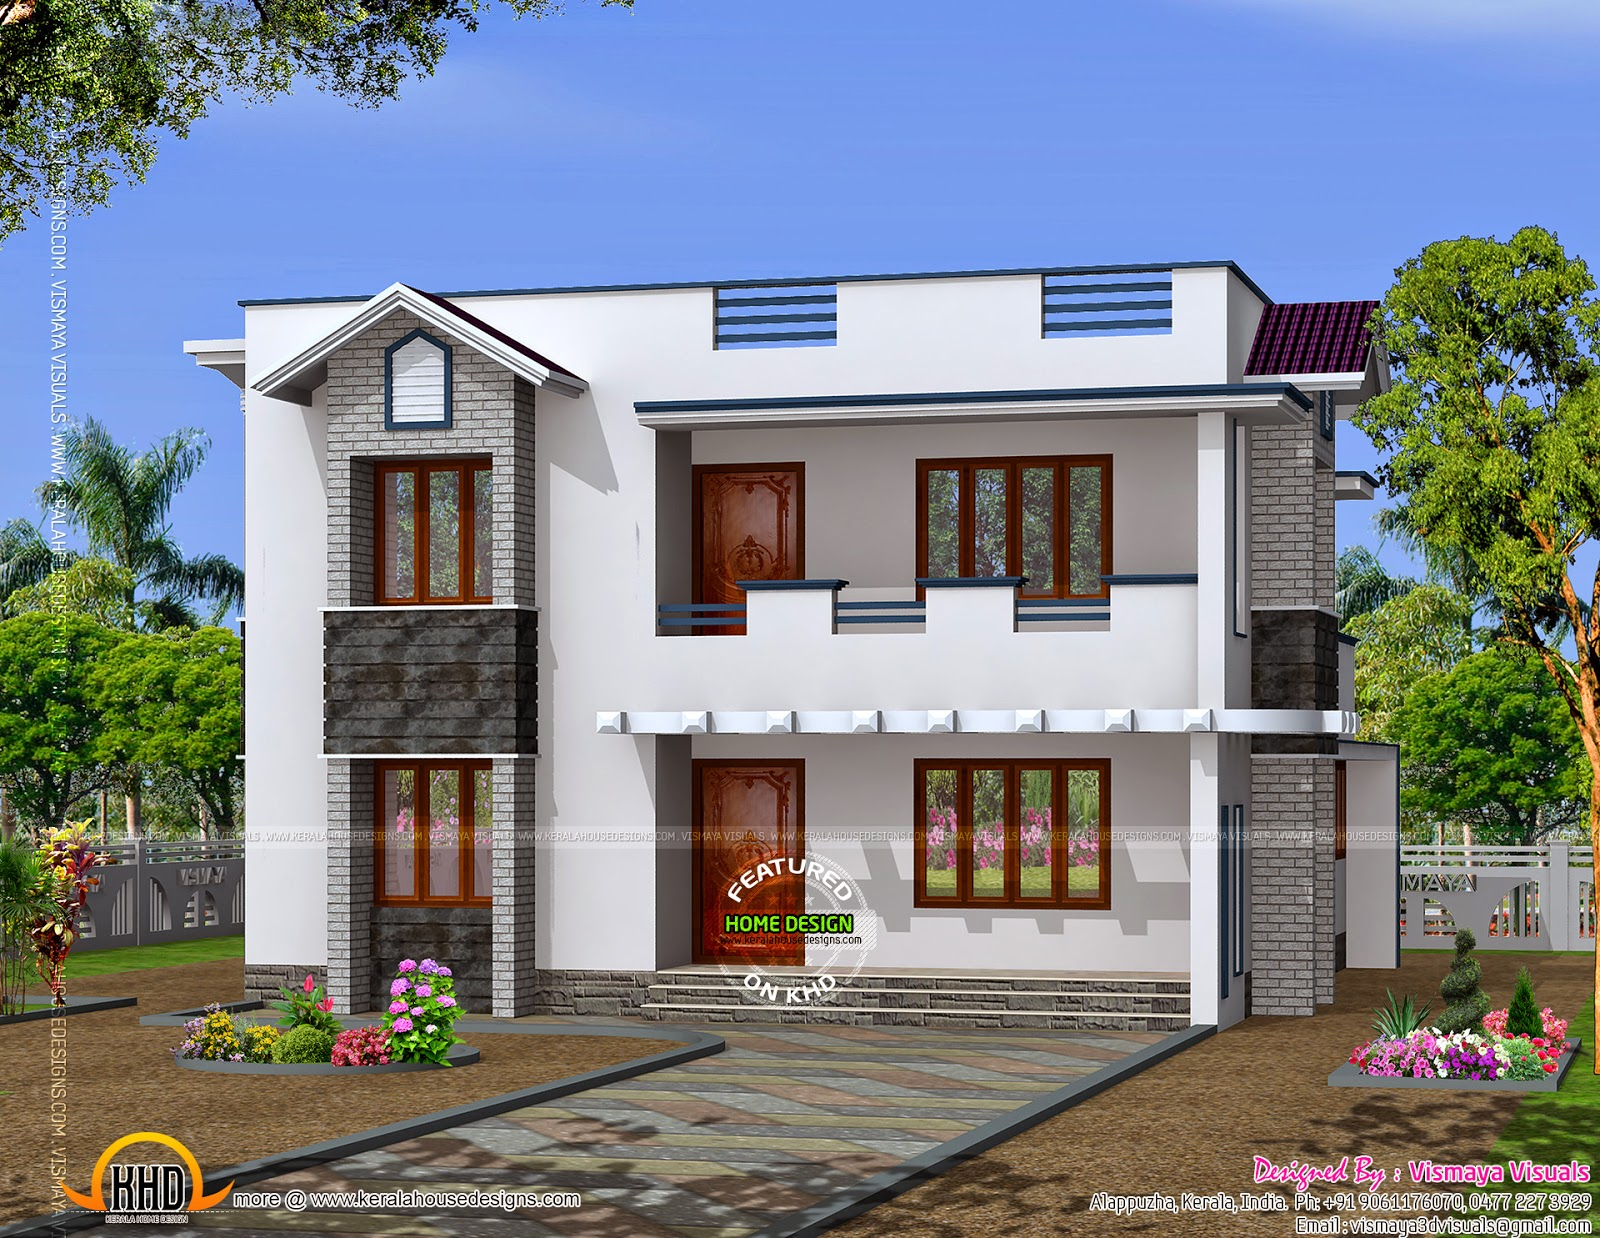 Simple design home kerala home design and floor plans for Best simple home design